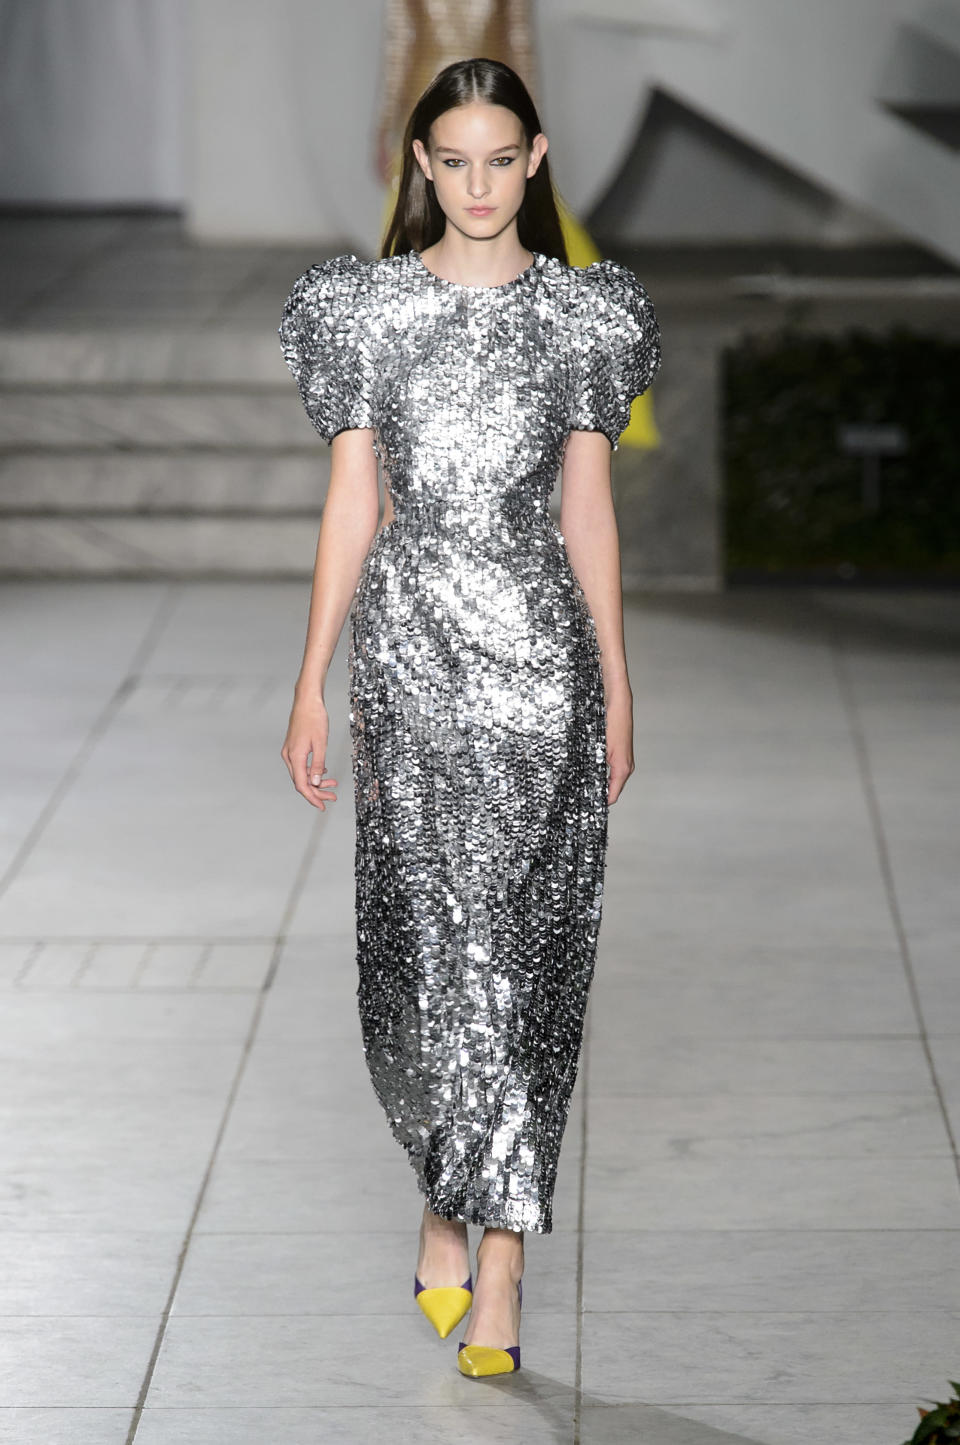 <p><i>Model wears a silver sequined dress with puffed sleeves from the SS18 Carolina Herrera collection. (Photo: IMAXtree) </i></p>